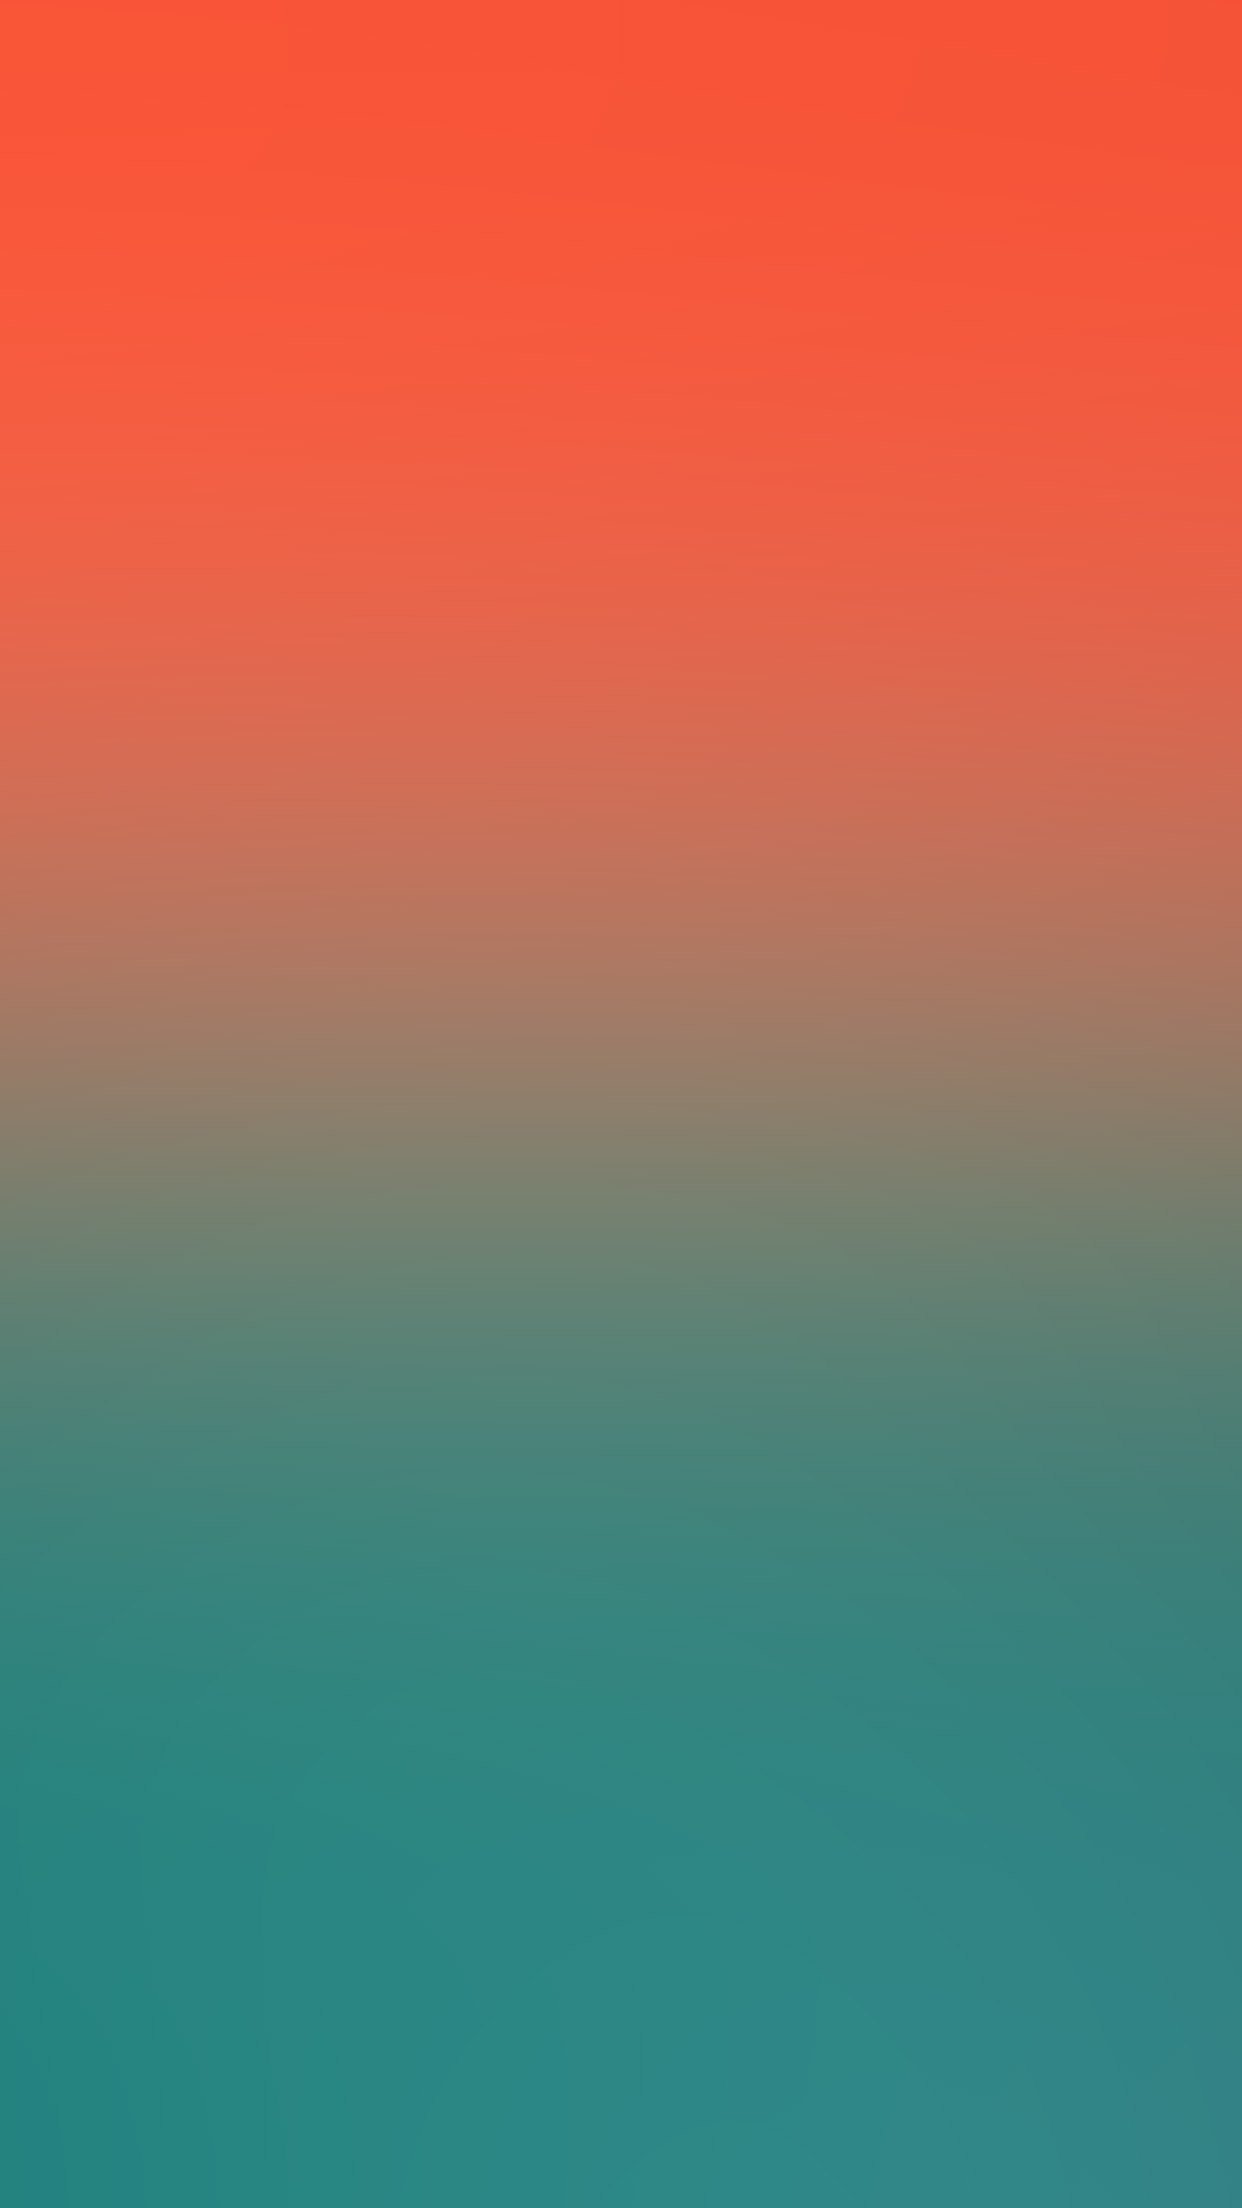 Iphonexpapers Com Iphone X Wallpaper Si42 Japanese Art Red Green Gradation Blur